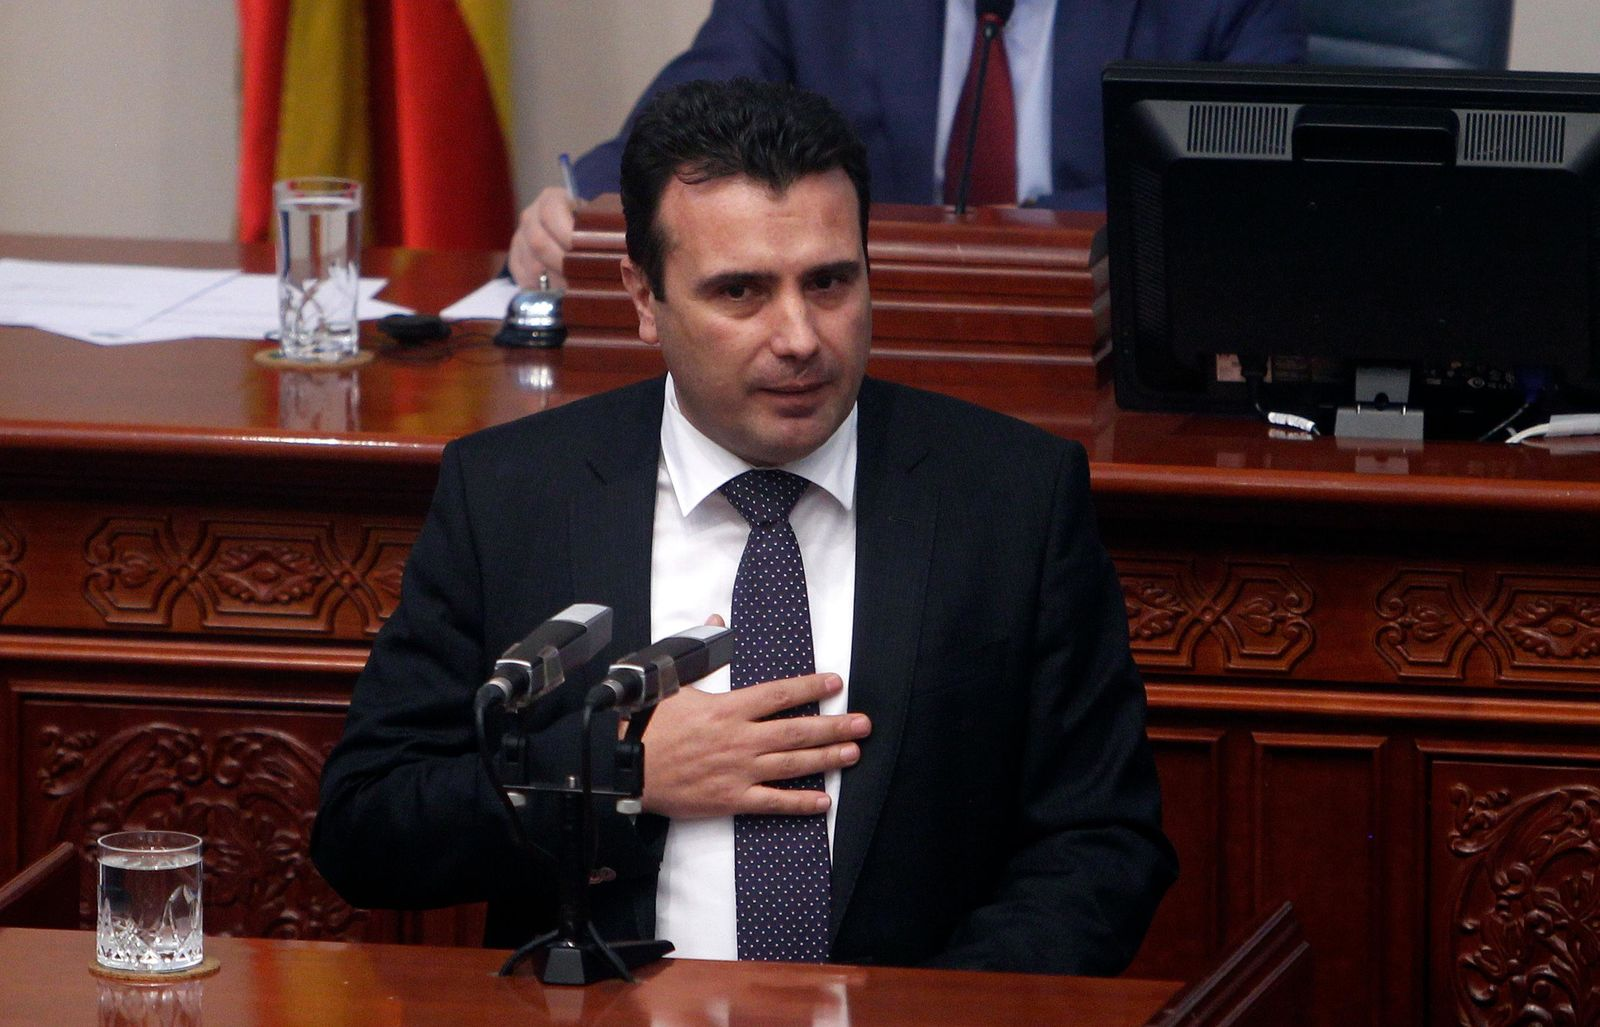 Macedonian Prime Minister Zoran Zaev speaks during a session of the Macedonian Parliament in the capital Skopje, Friday, Jan. 11, 2019. Macedonia has fulfilled its part of a deal that will pave its way to NATO membership and normalize relations with neighboring Greece, after lawmakers approved constitutional changes that will rename the country North Macedonia. (AP Photo/Boris Grdanoski)